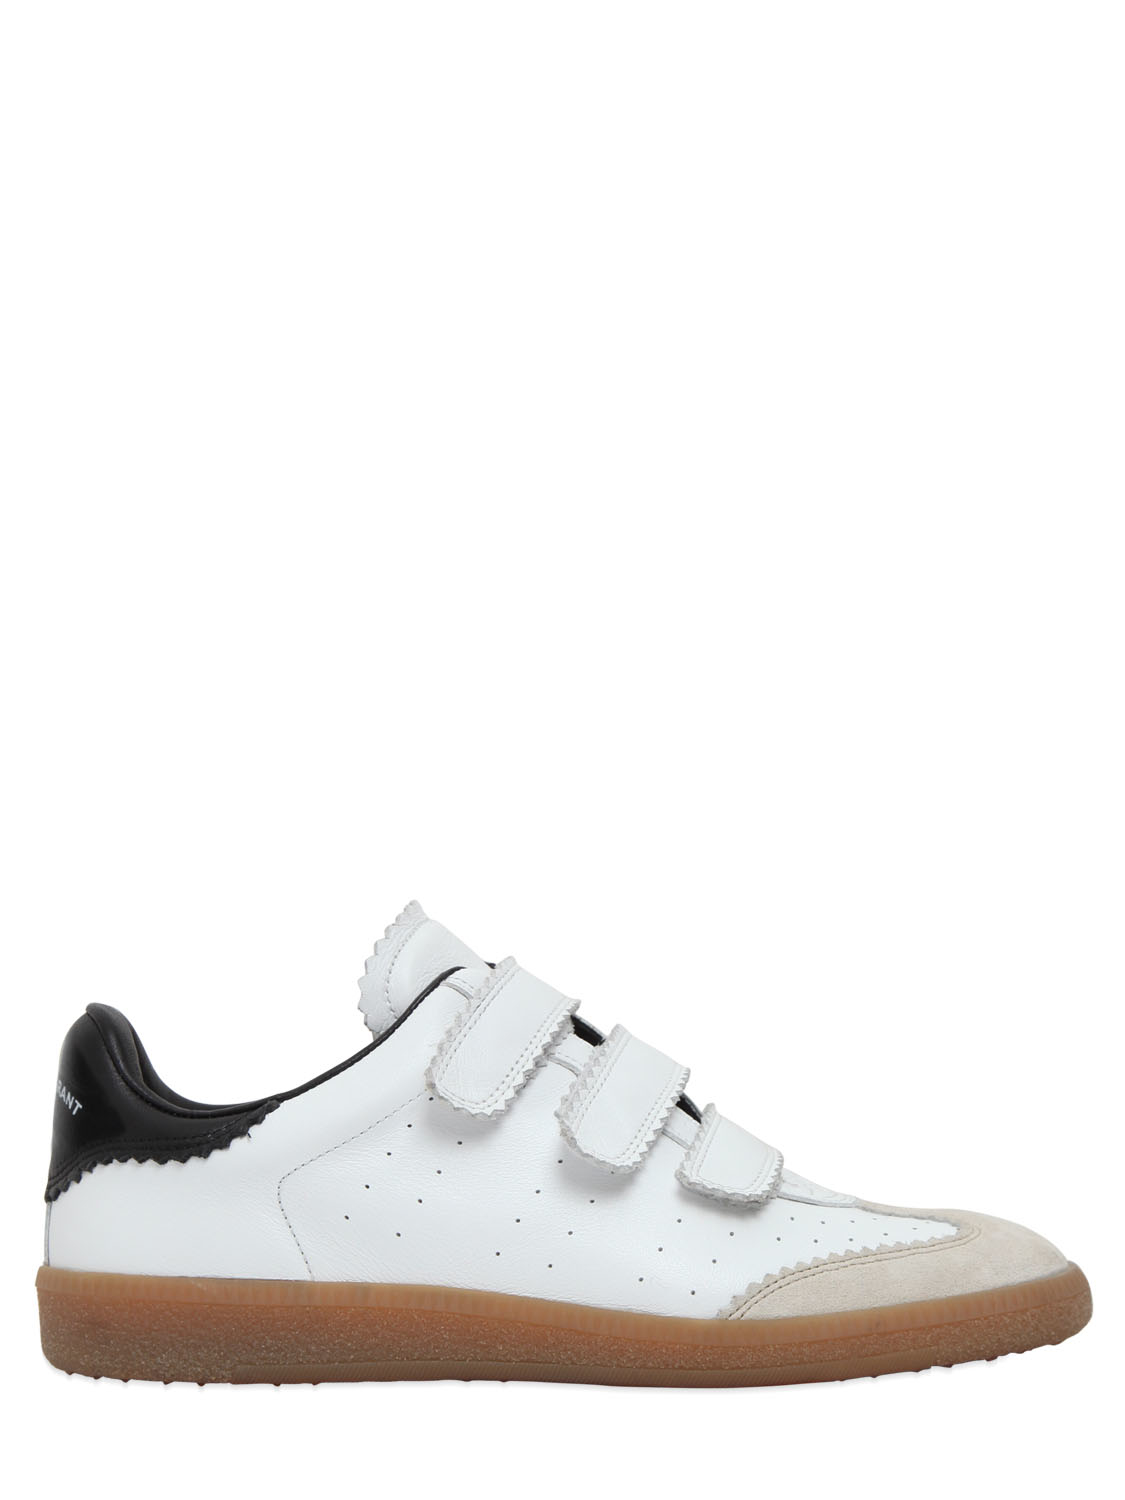 isabel marant etoile beth leather sneakers in white white black lyst. Black Bedroom Furniture Sets. Home Design Ideas